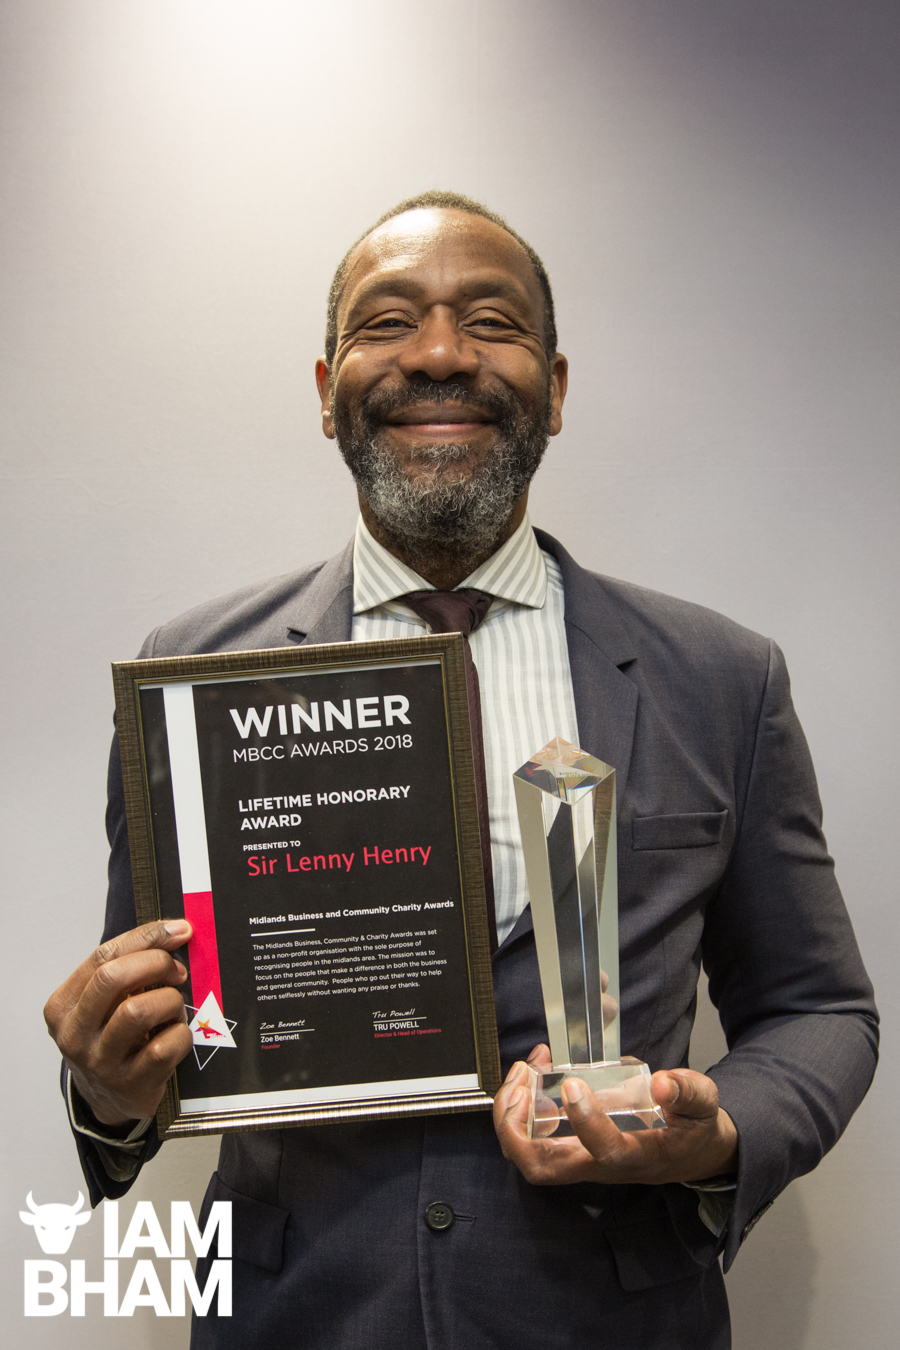 Sir Lenny Henry receiving his Lifetime Honorary Award from the MBCC Awards